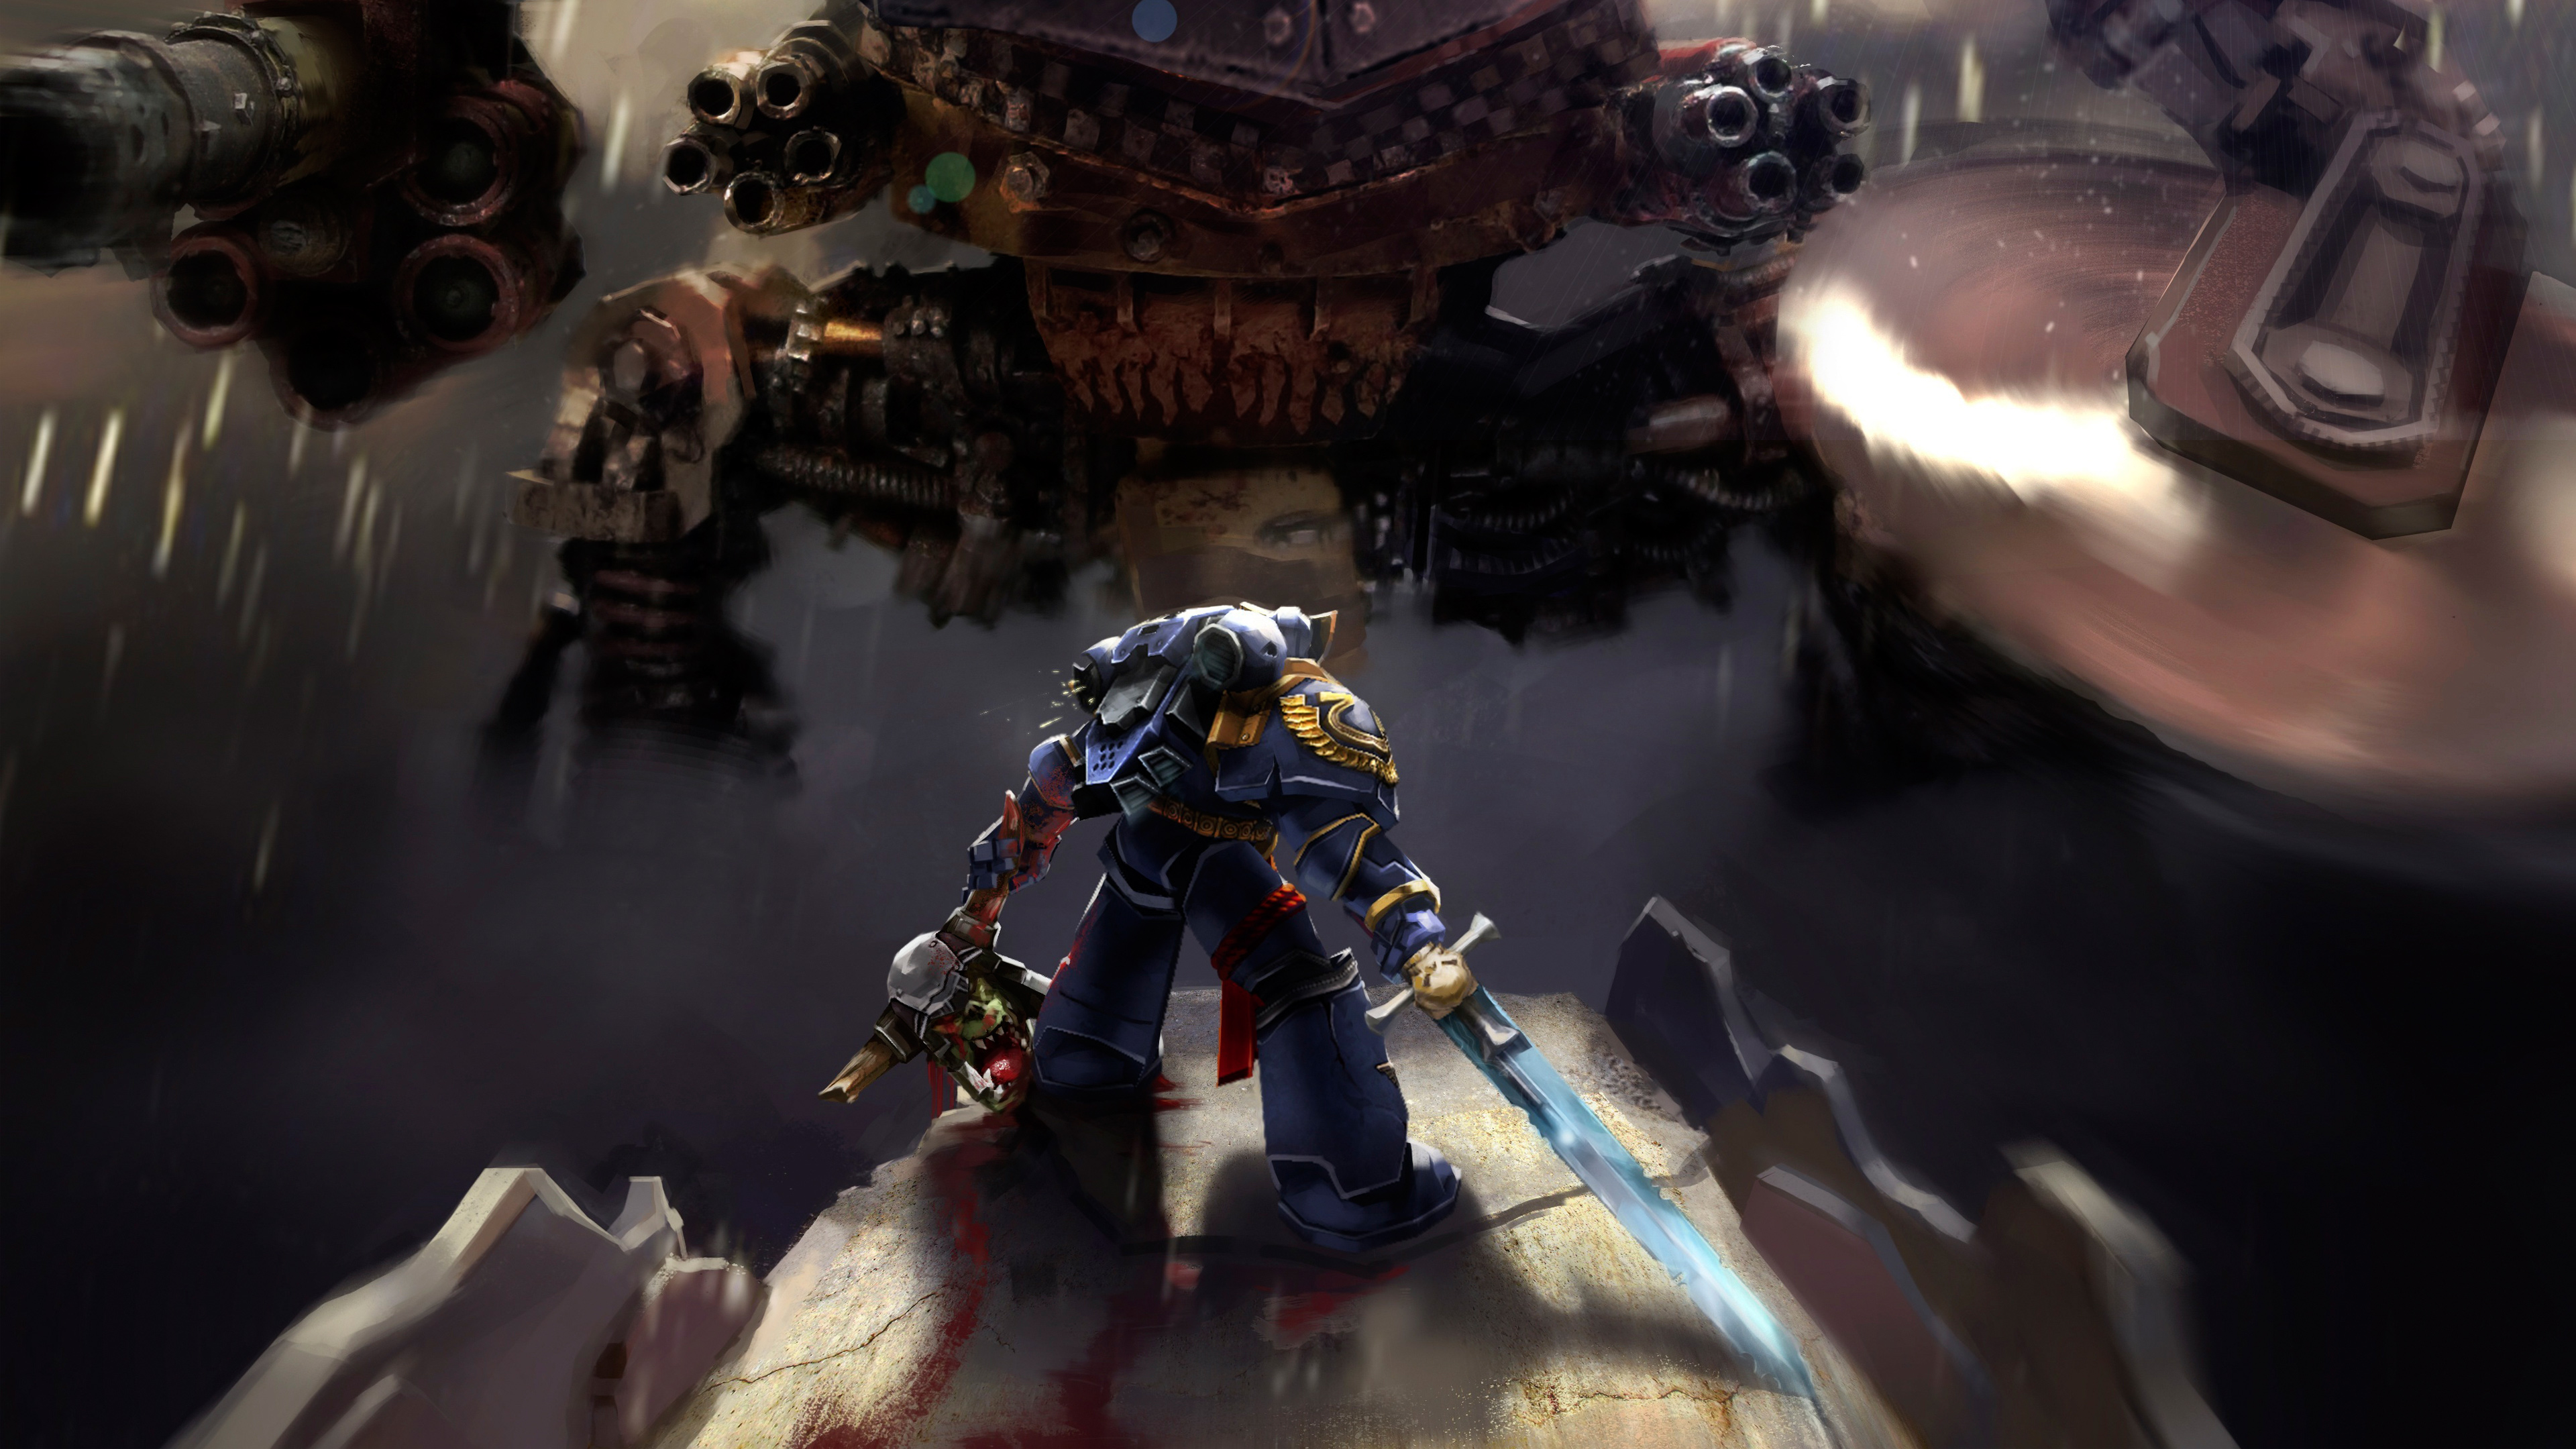 Warhammer 40k Space Marine Ultramarines Hd Games 4k Wallpapers Images Backgrounds Photos And Pictures